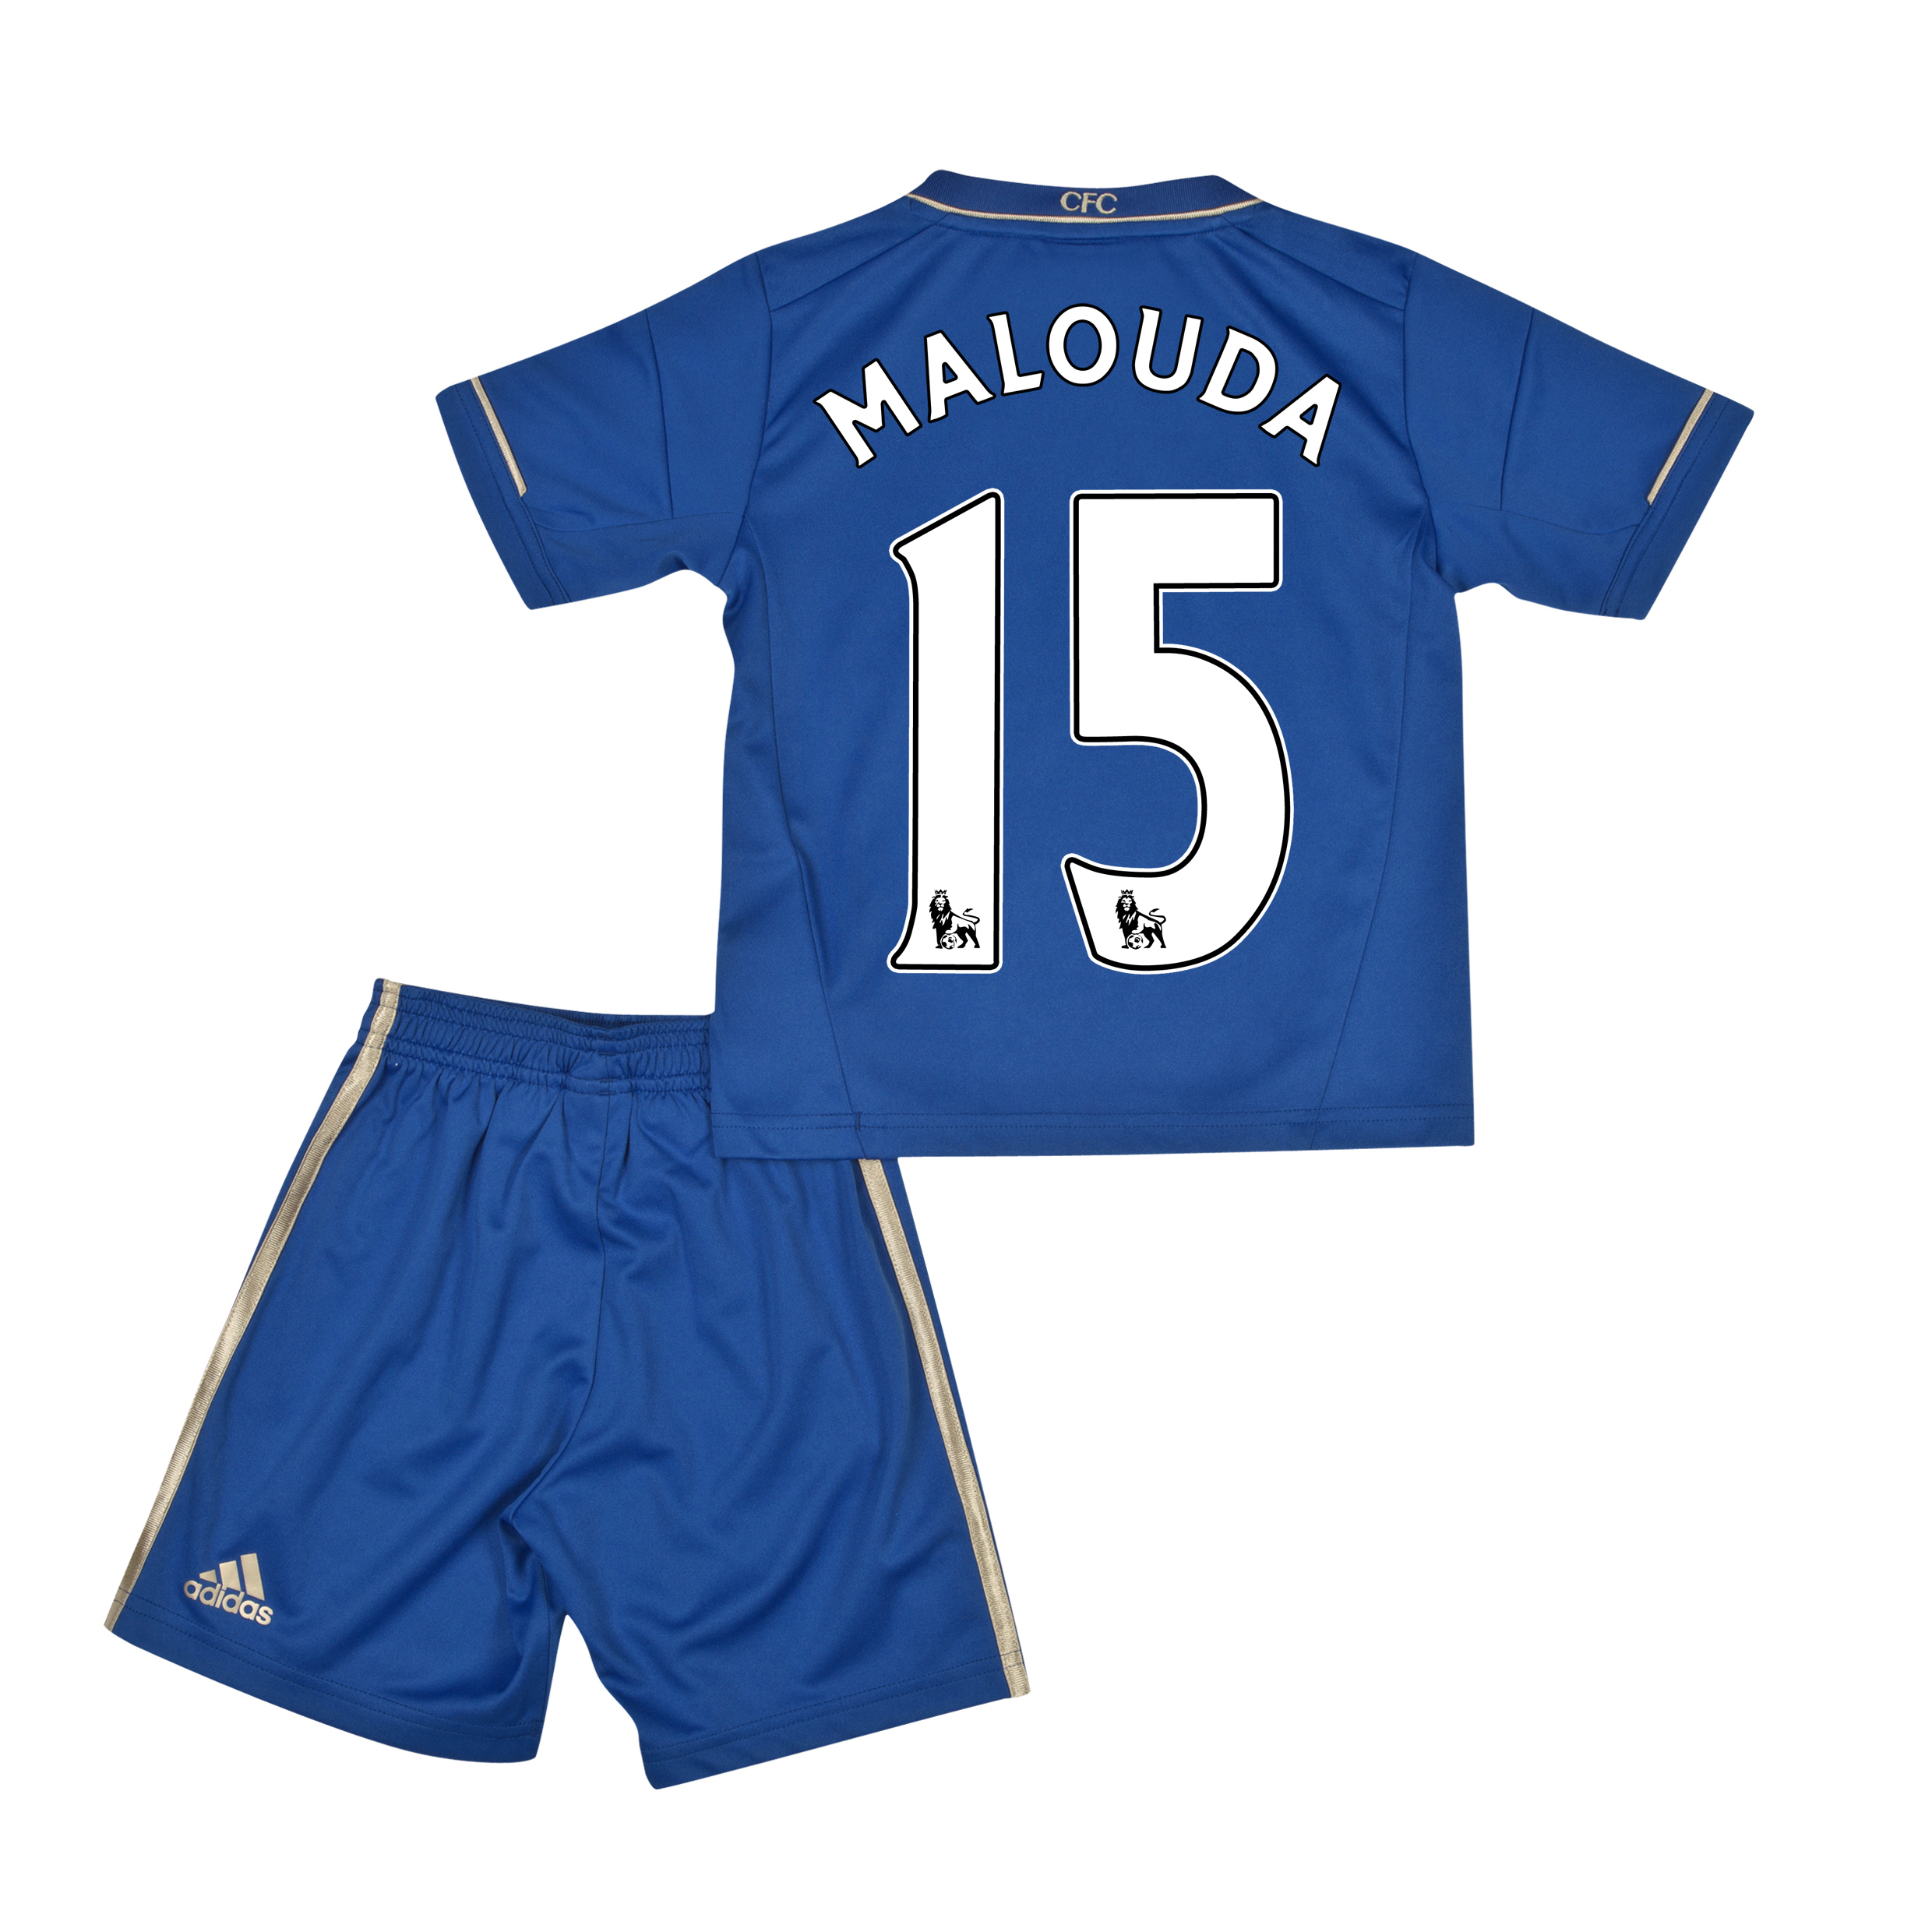 Chelsea Home Mini Kit 2012/13 with Malouda 15 printing